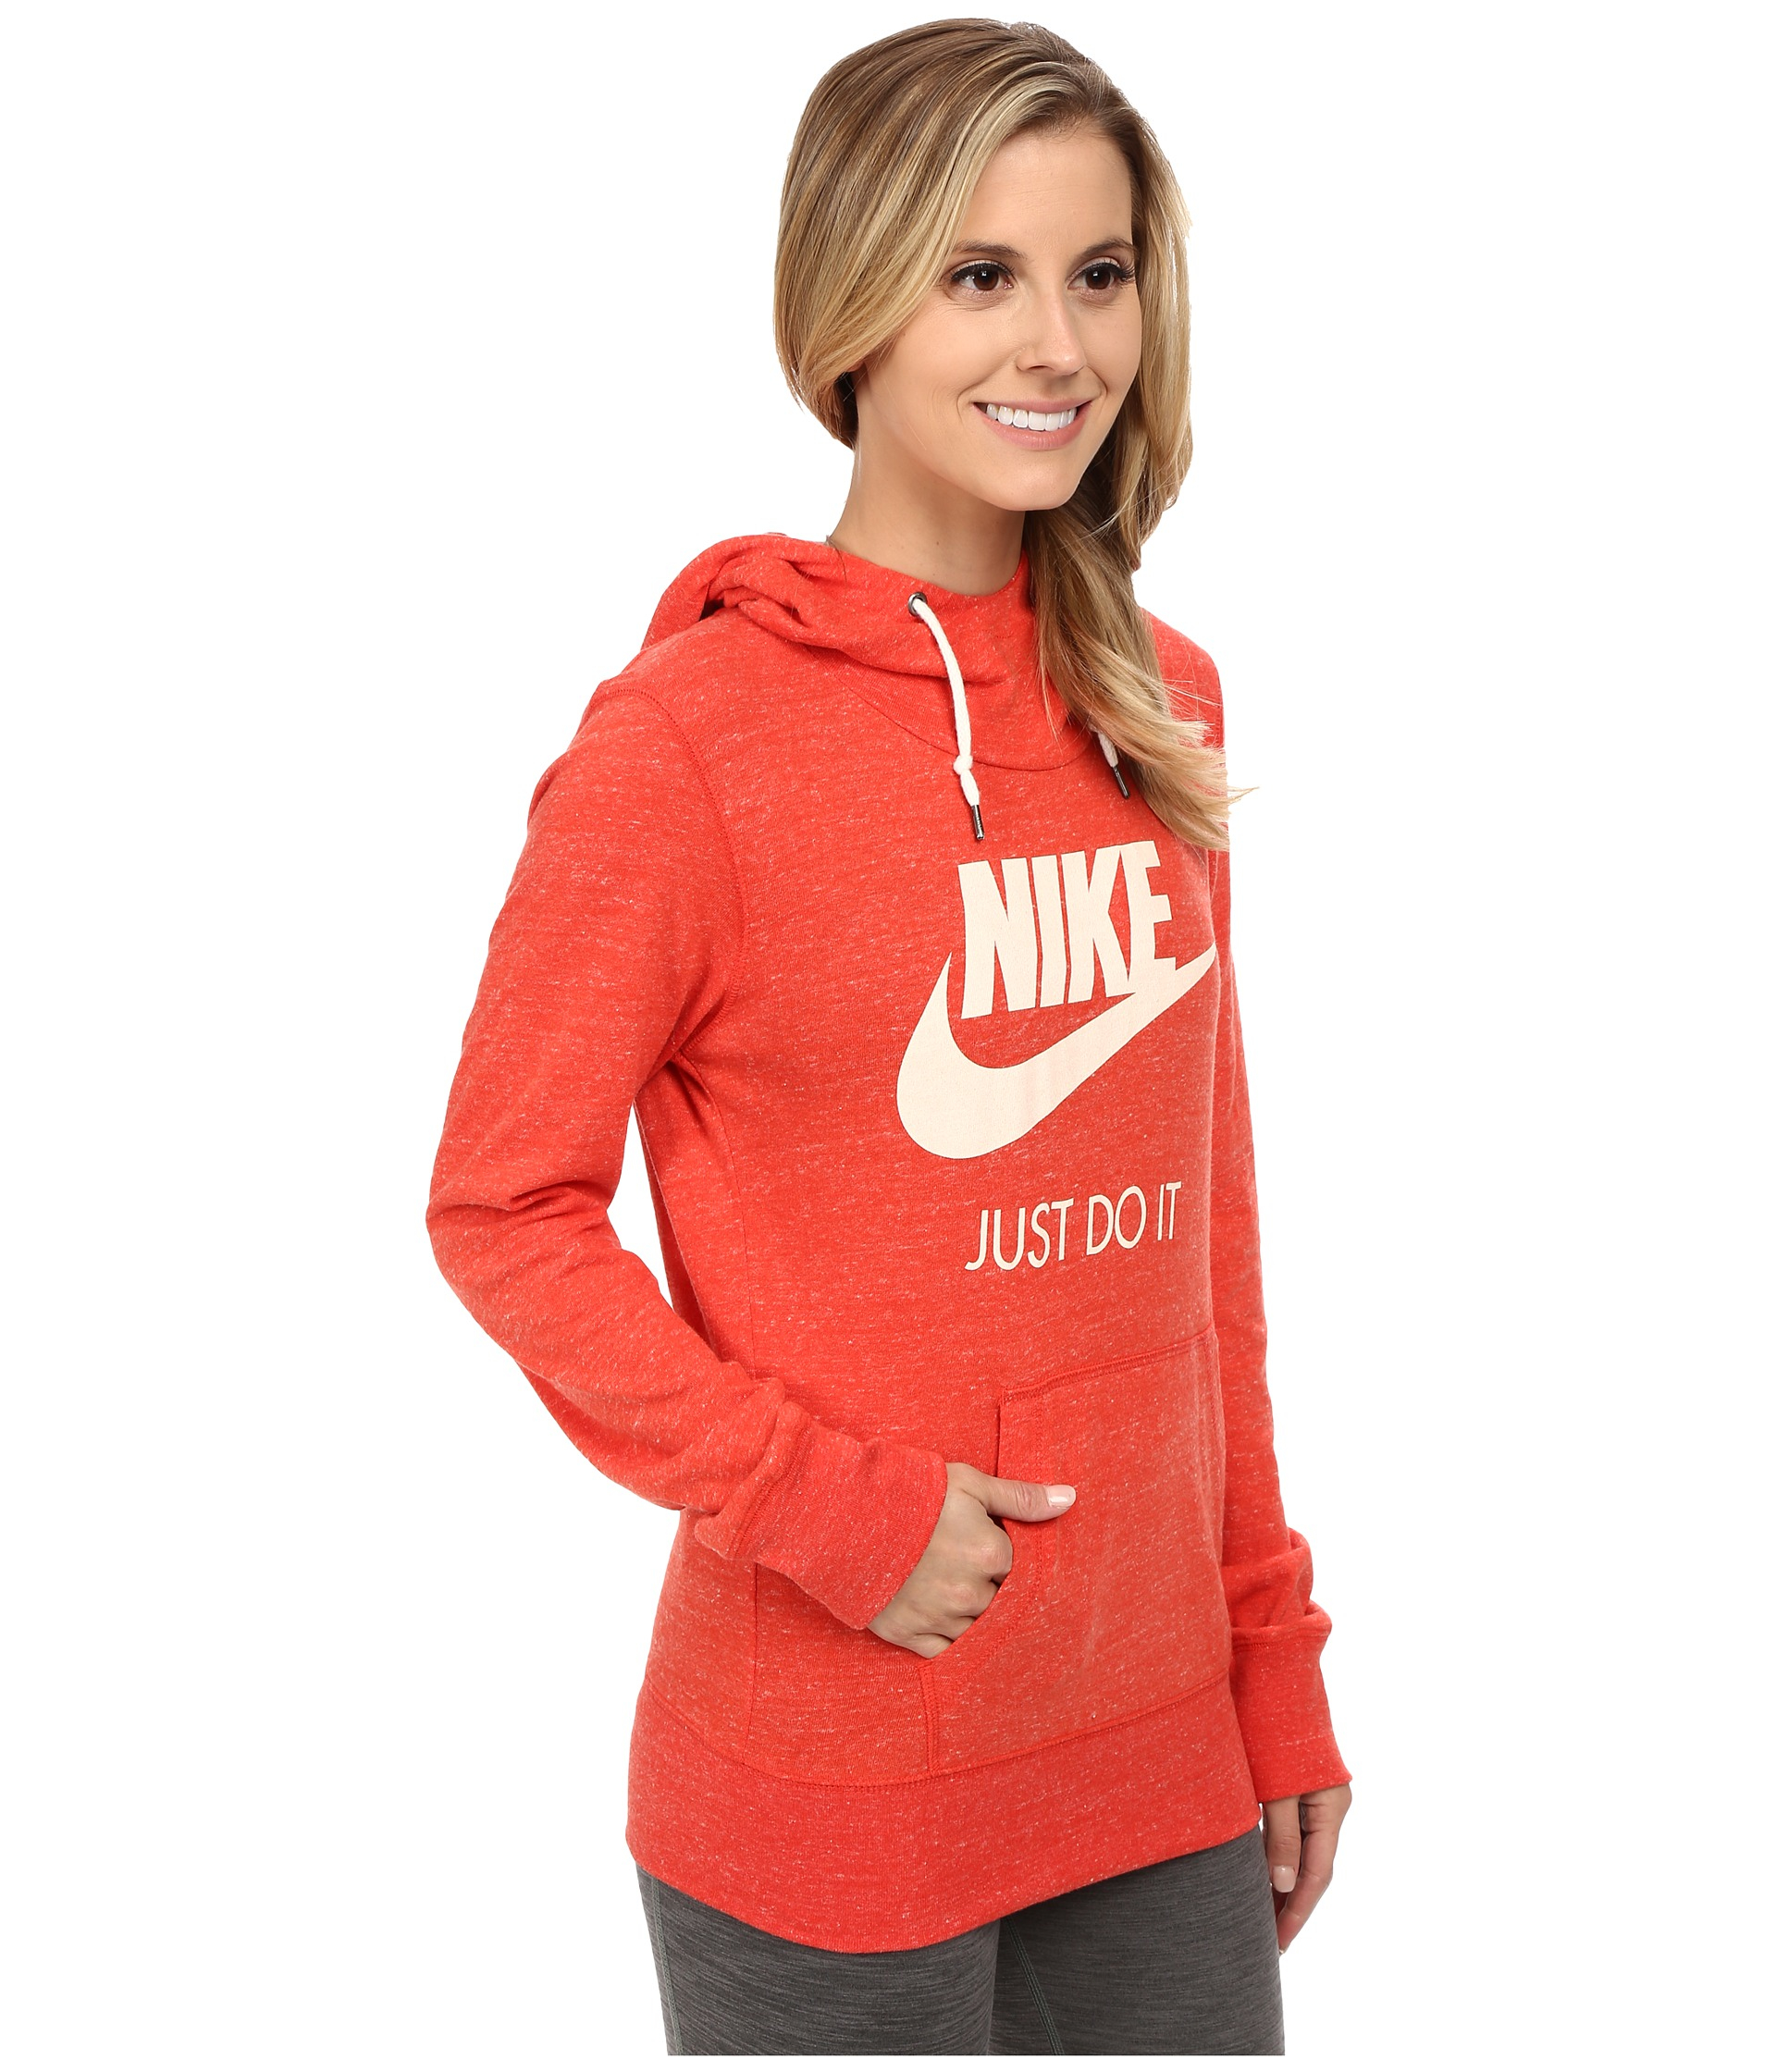 ff0048db631e ... Simple casual latest style Nike Gym Vintage Zip Through Hoodie -Women s  Sports Hoodies   Sweatshirts U. Gallery